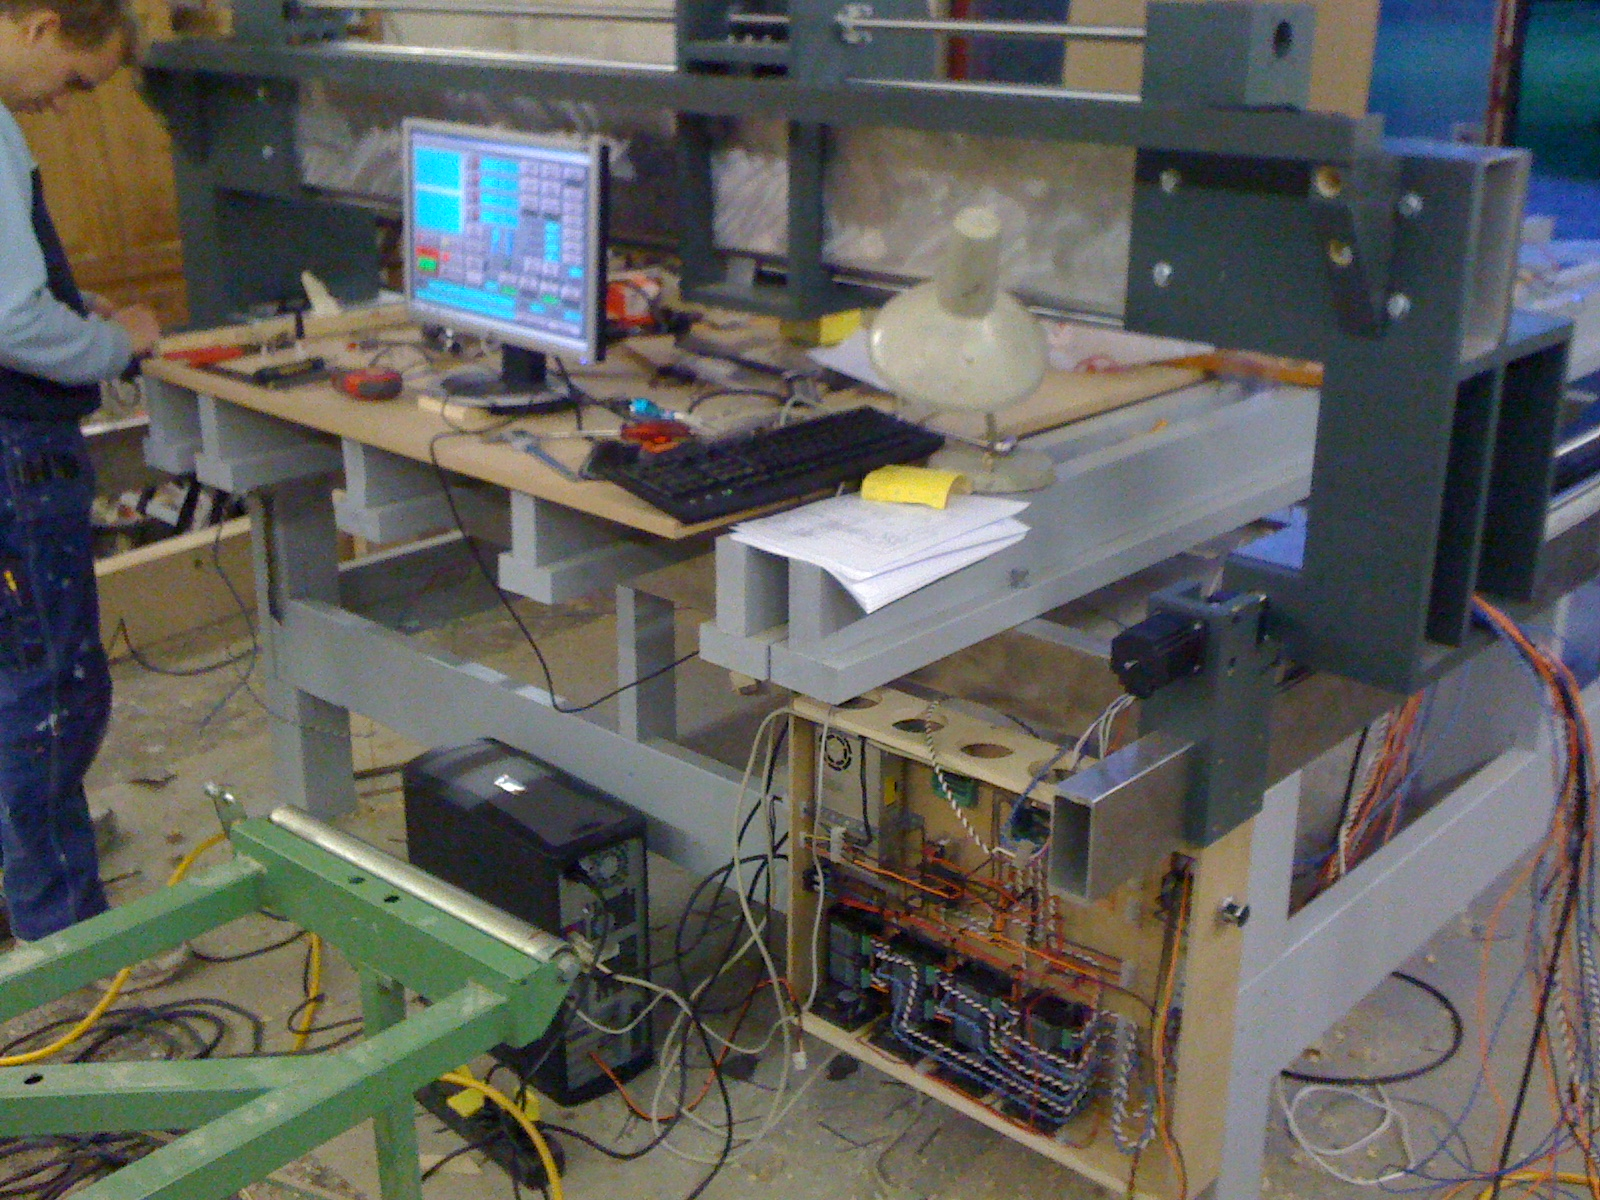 Testing operation with the Mach3 software